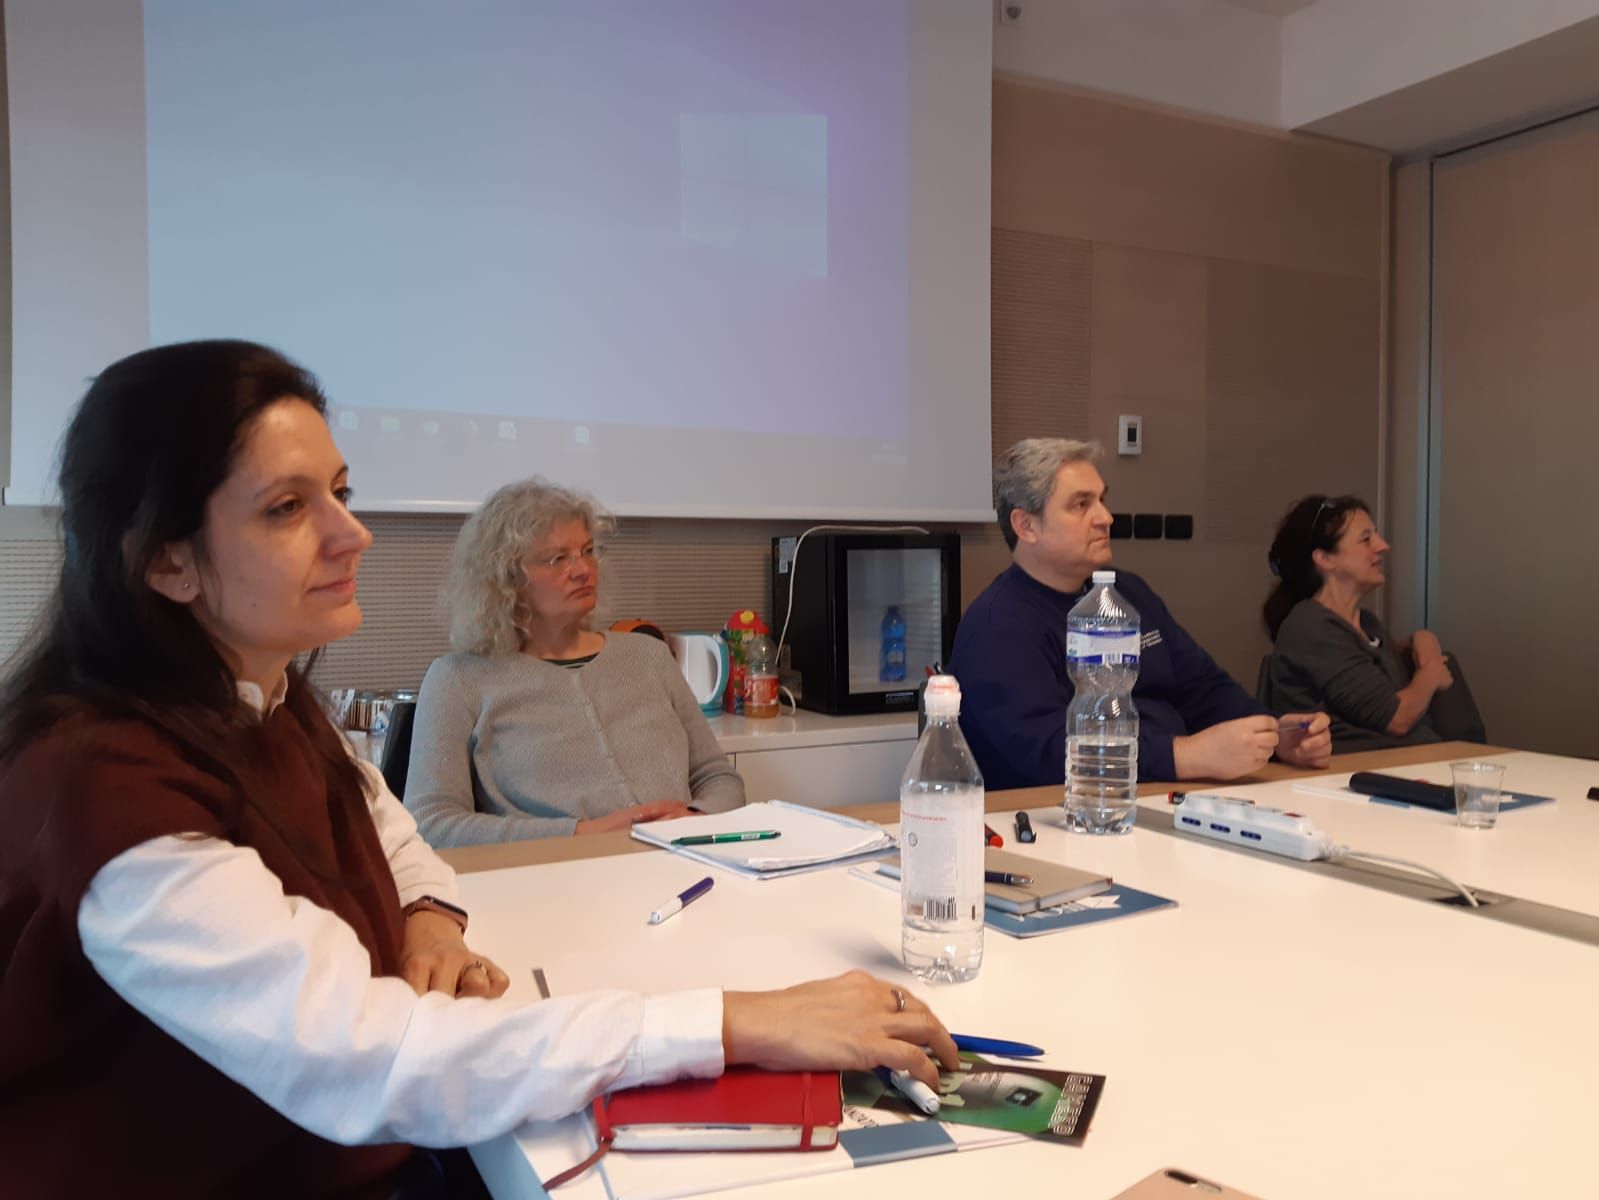 KA101 Bologna – Special needs and inclusive education, the Italian experience of overcoming segregation_2nd Day